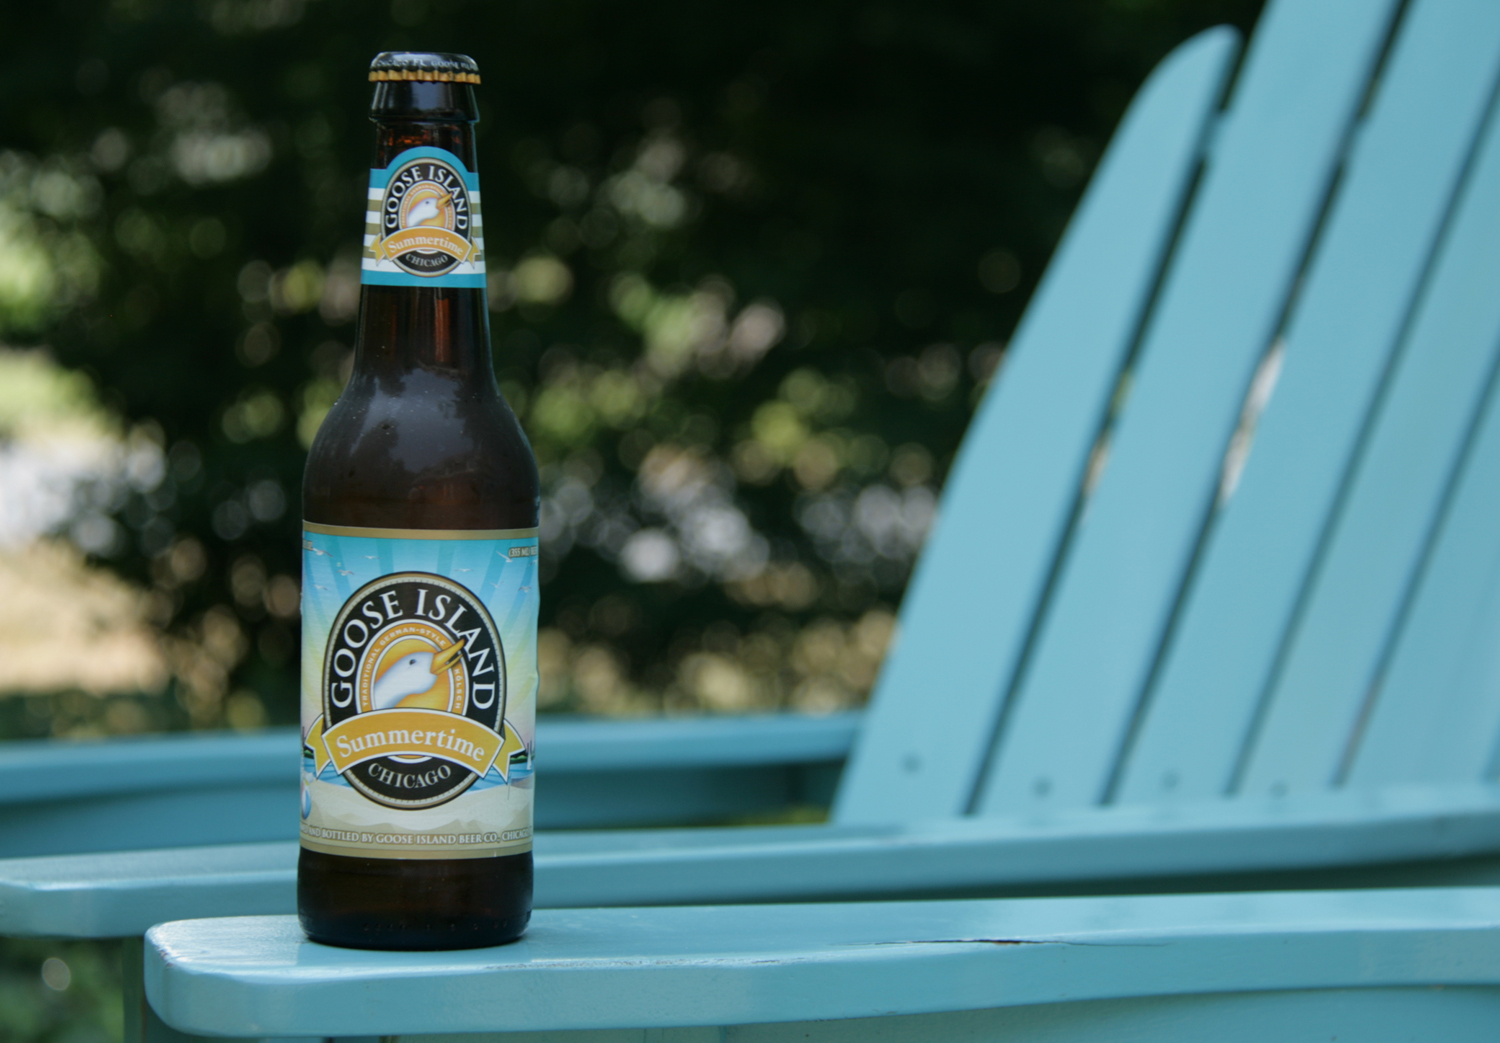 Drink a favorite craft Goose Island Summertime beer this season.